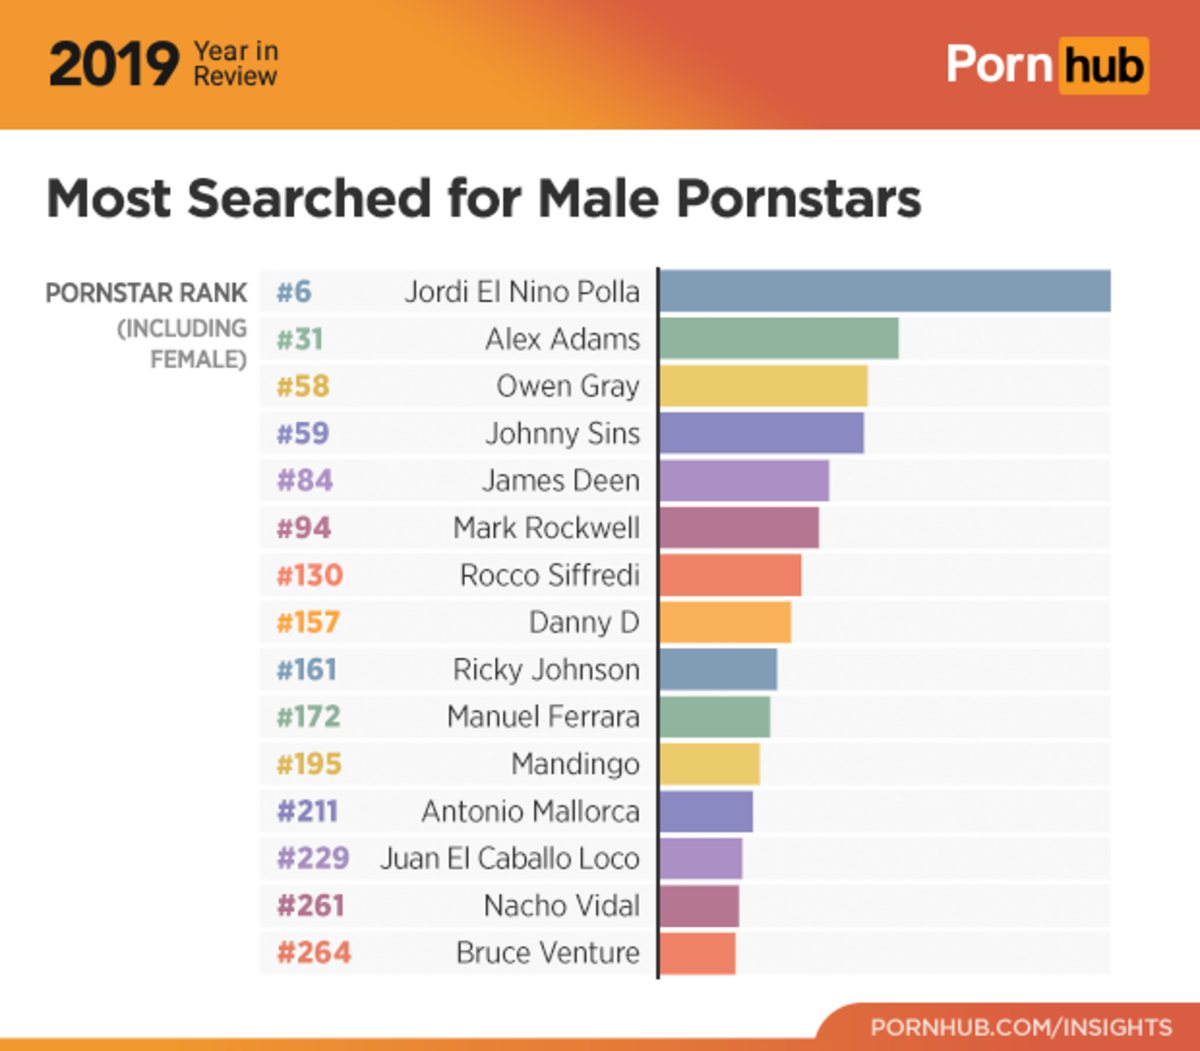 1-pornhub-insights-2019-year-review-most-searched-male-pornstars-1